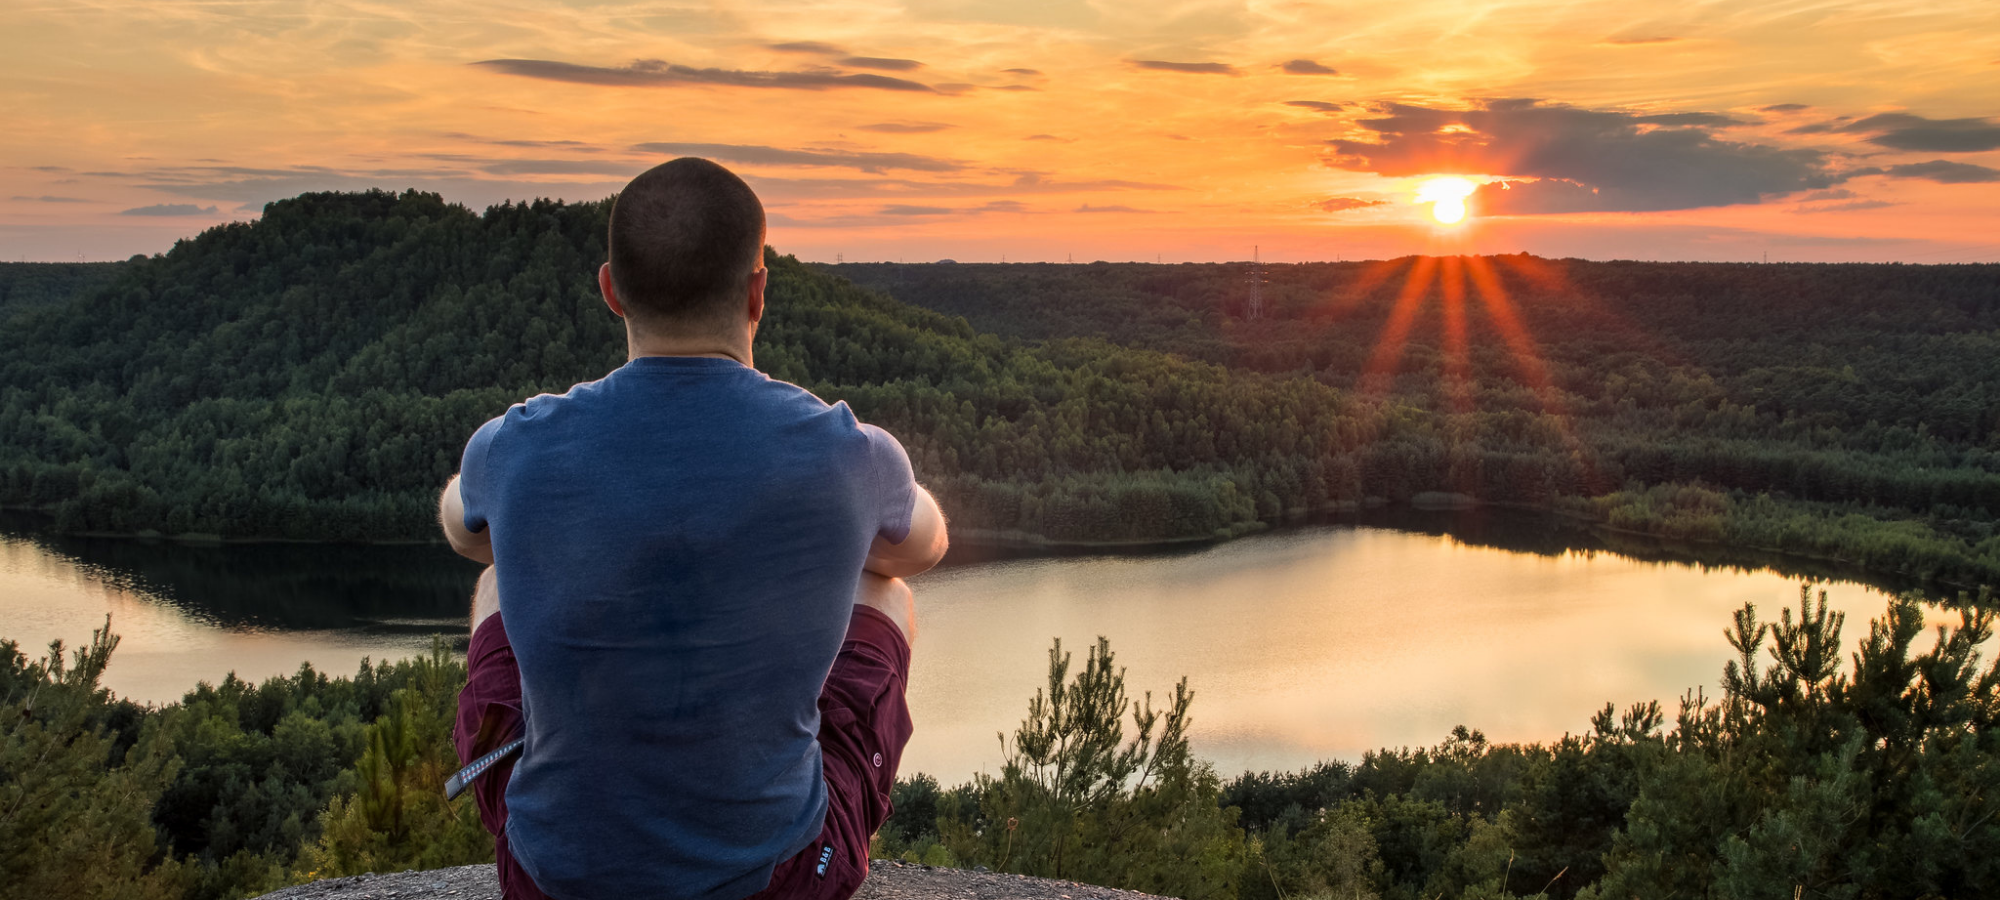 A man watching the sunset on top of a Terrill at Connecterra, part of the Hoge Kempen National Park in Limburg, Belgium